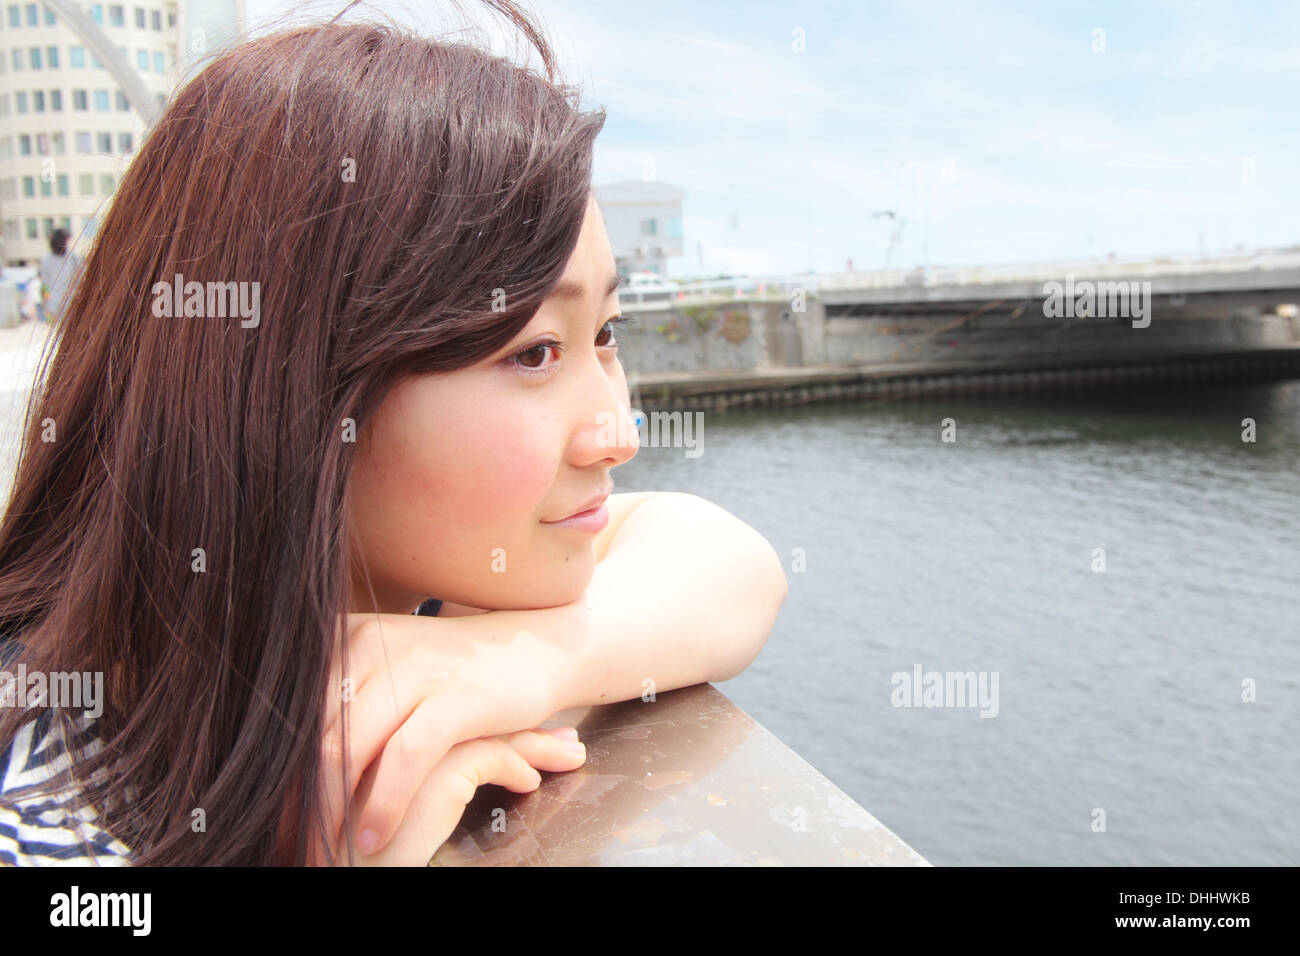 Young woman leaning on railings overlooking river - Stock Image